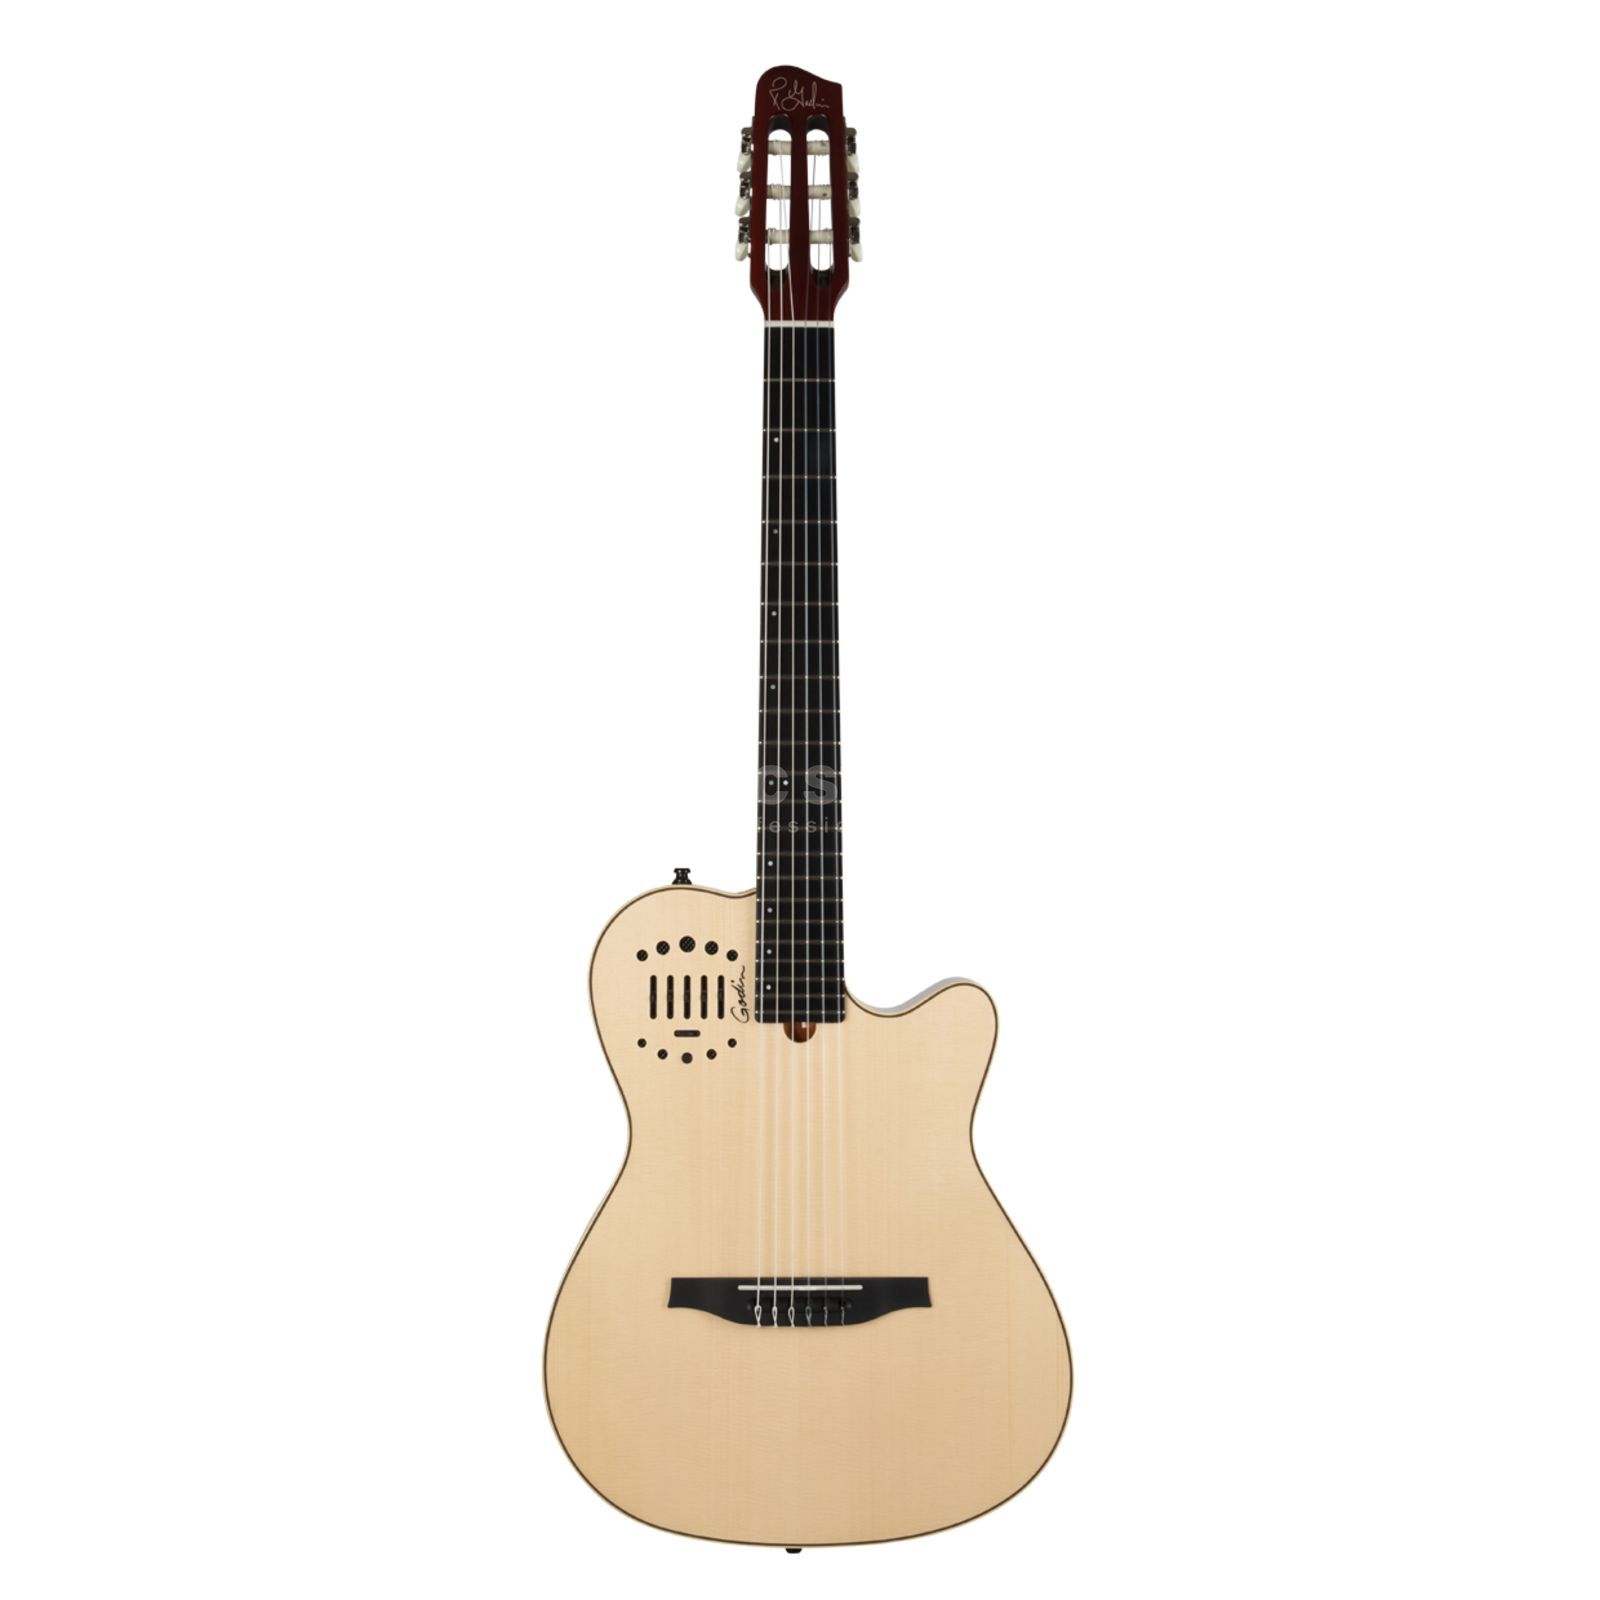 Godin Multiac Nylon Duet Ambiance Natural Semigloss- Finish Produktbillede